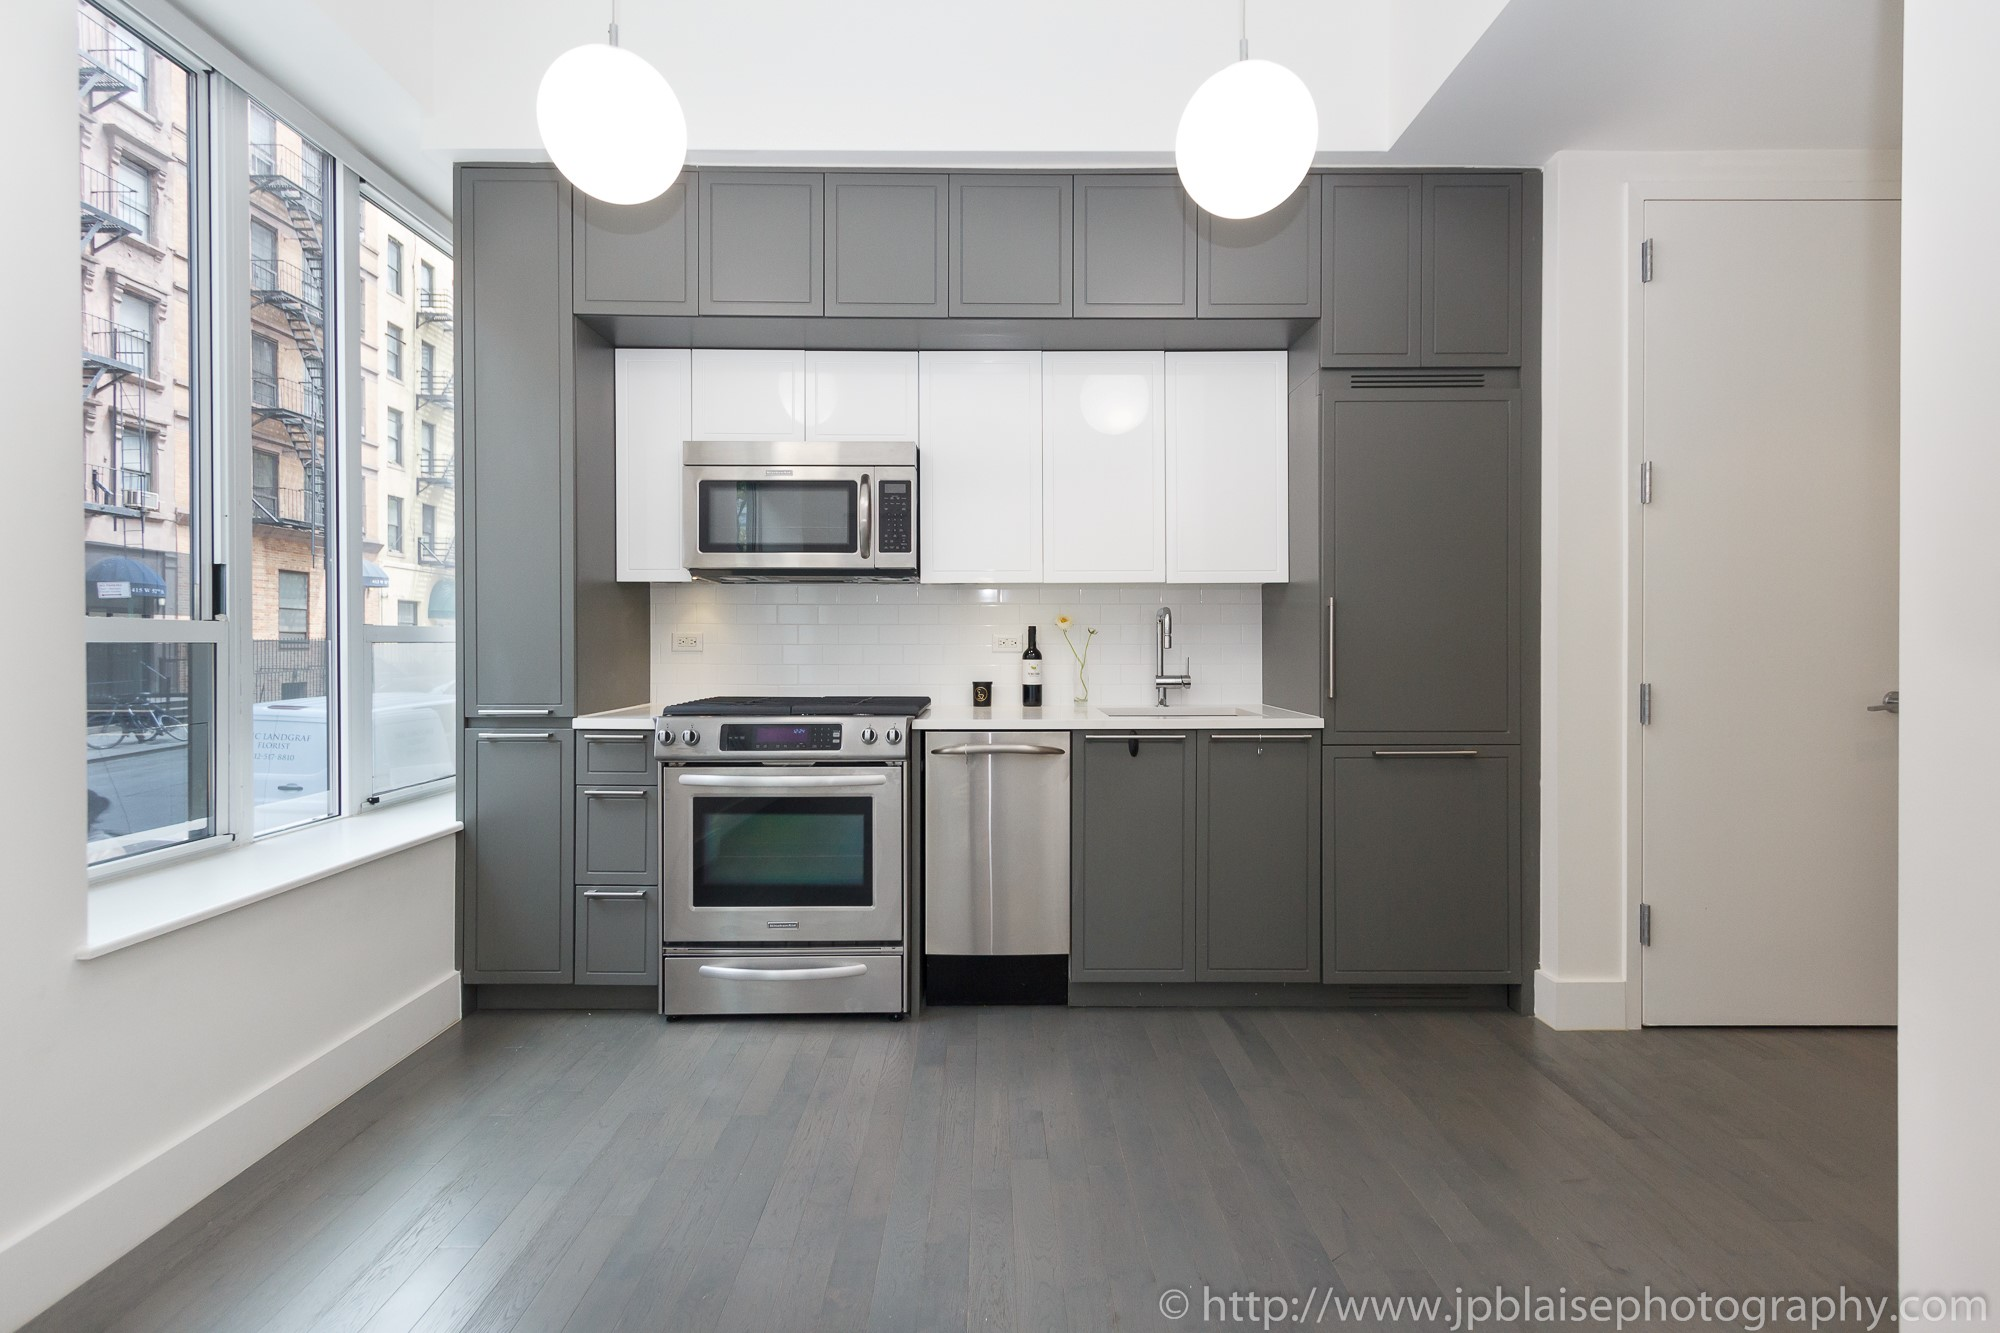 Renovated one bedroom apartment in Midtown West, NYC